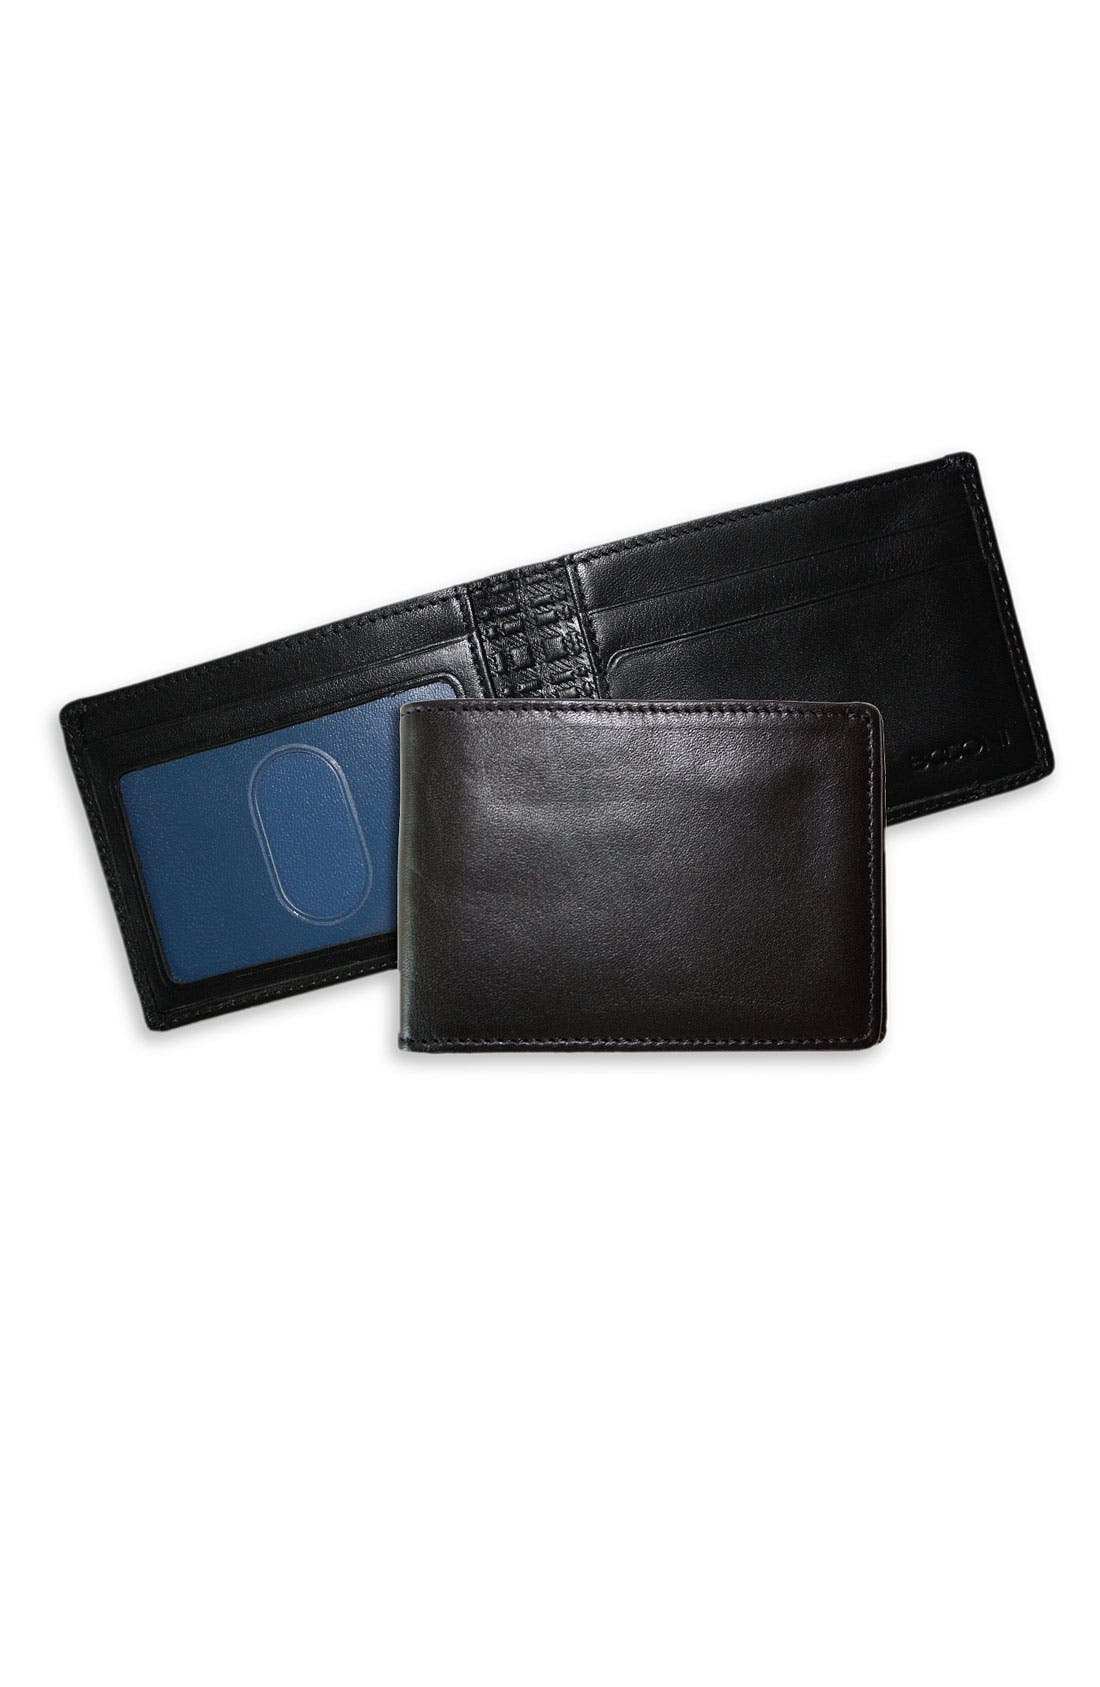 Alternate Image 1 Selected - Boconi 'Slimster' Wallet